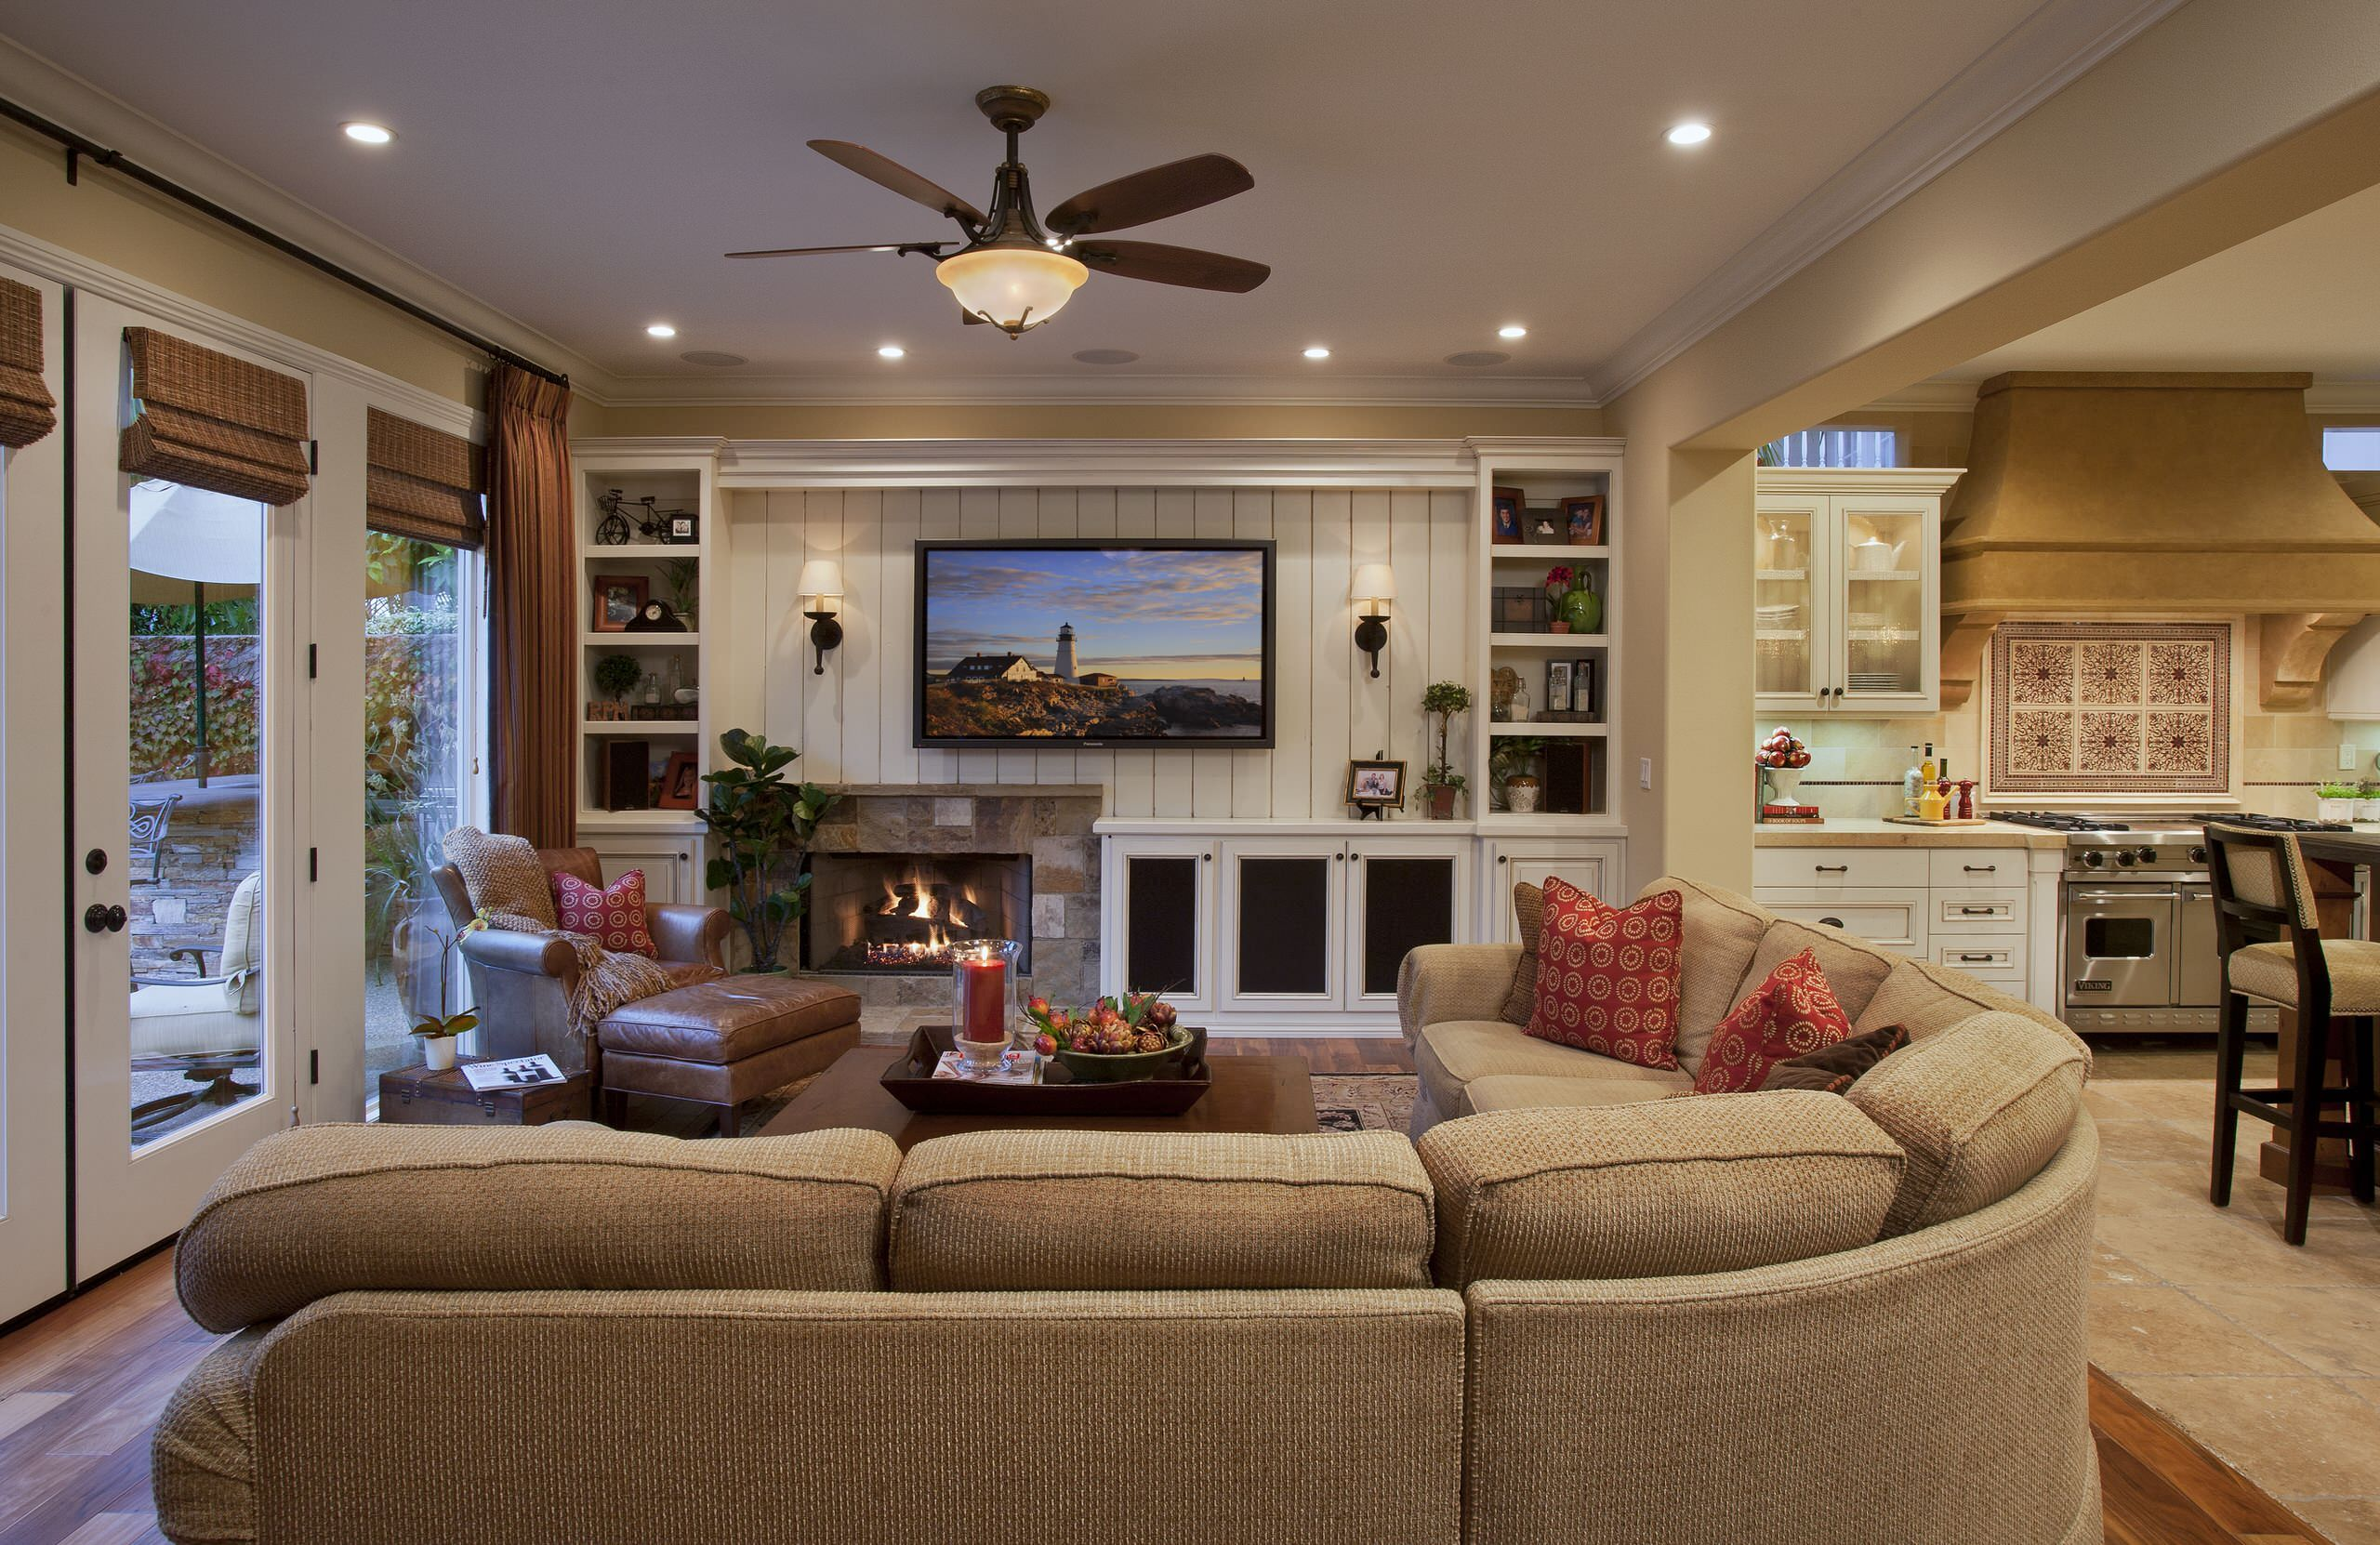 See 18 Beautiful Examples Of Family Room Concepts:  Https://www.homeawakening.com/18 Beautiful Examples Of Family Room Concepts/